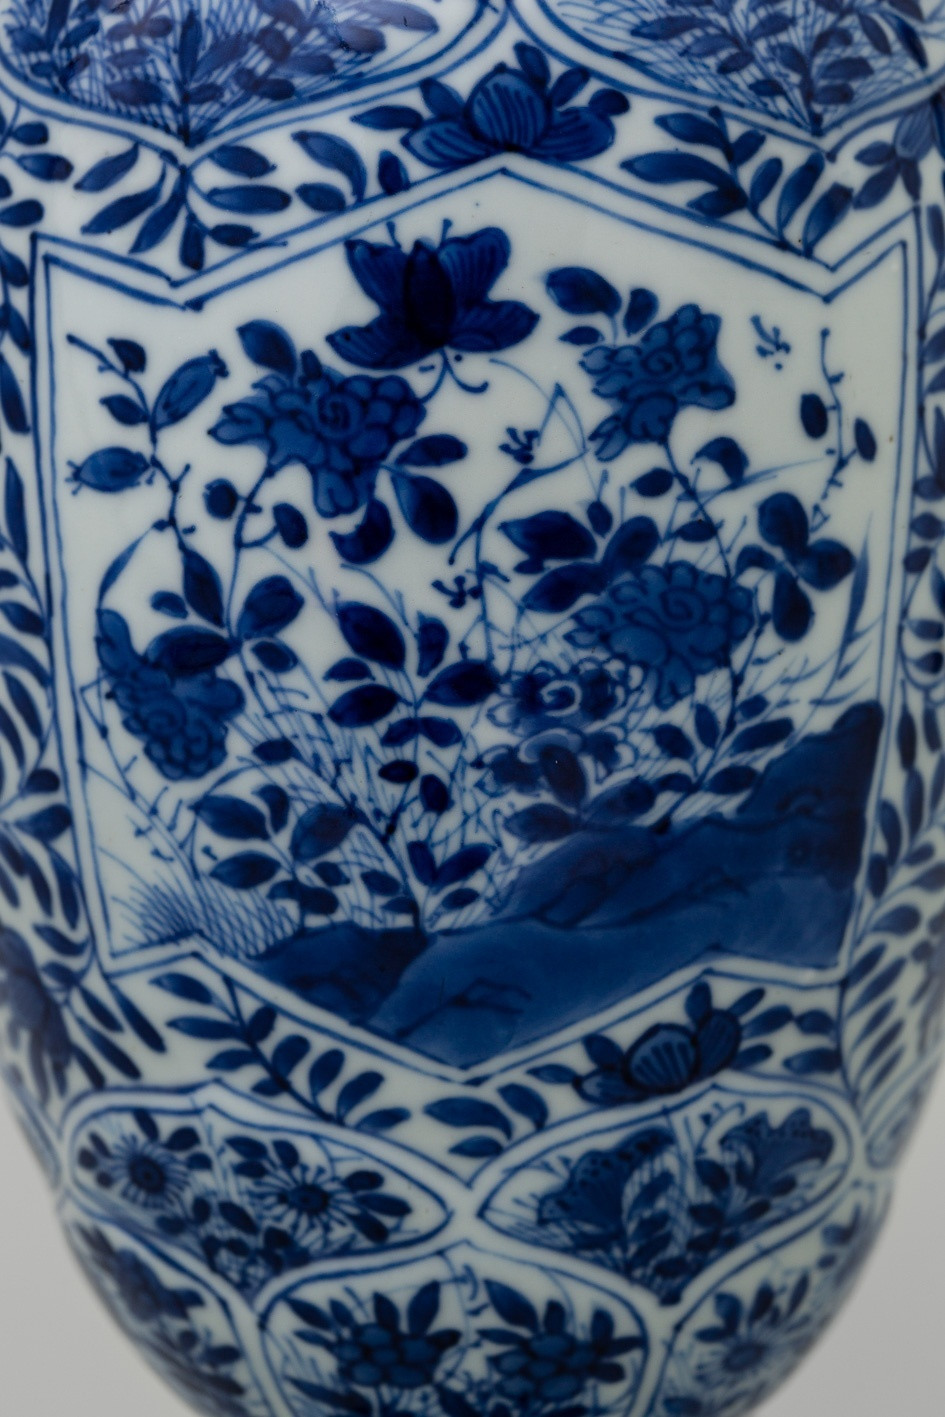 oriental porcelain vase of a chinese blue and white baluster vase and cover kangxi 1662 172 pertaining to a chinese blue and white baluster vase and cover